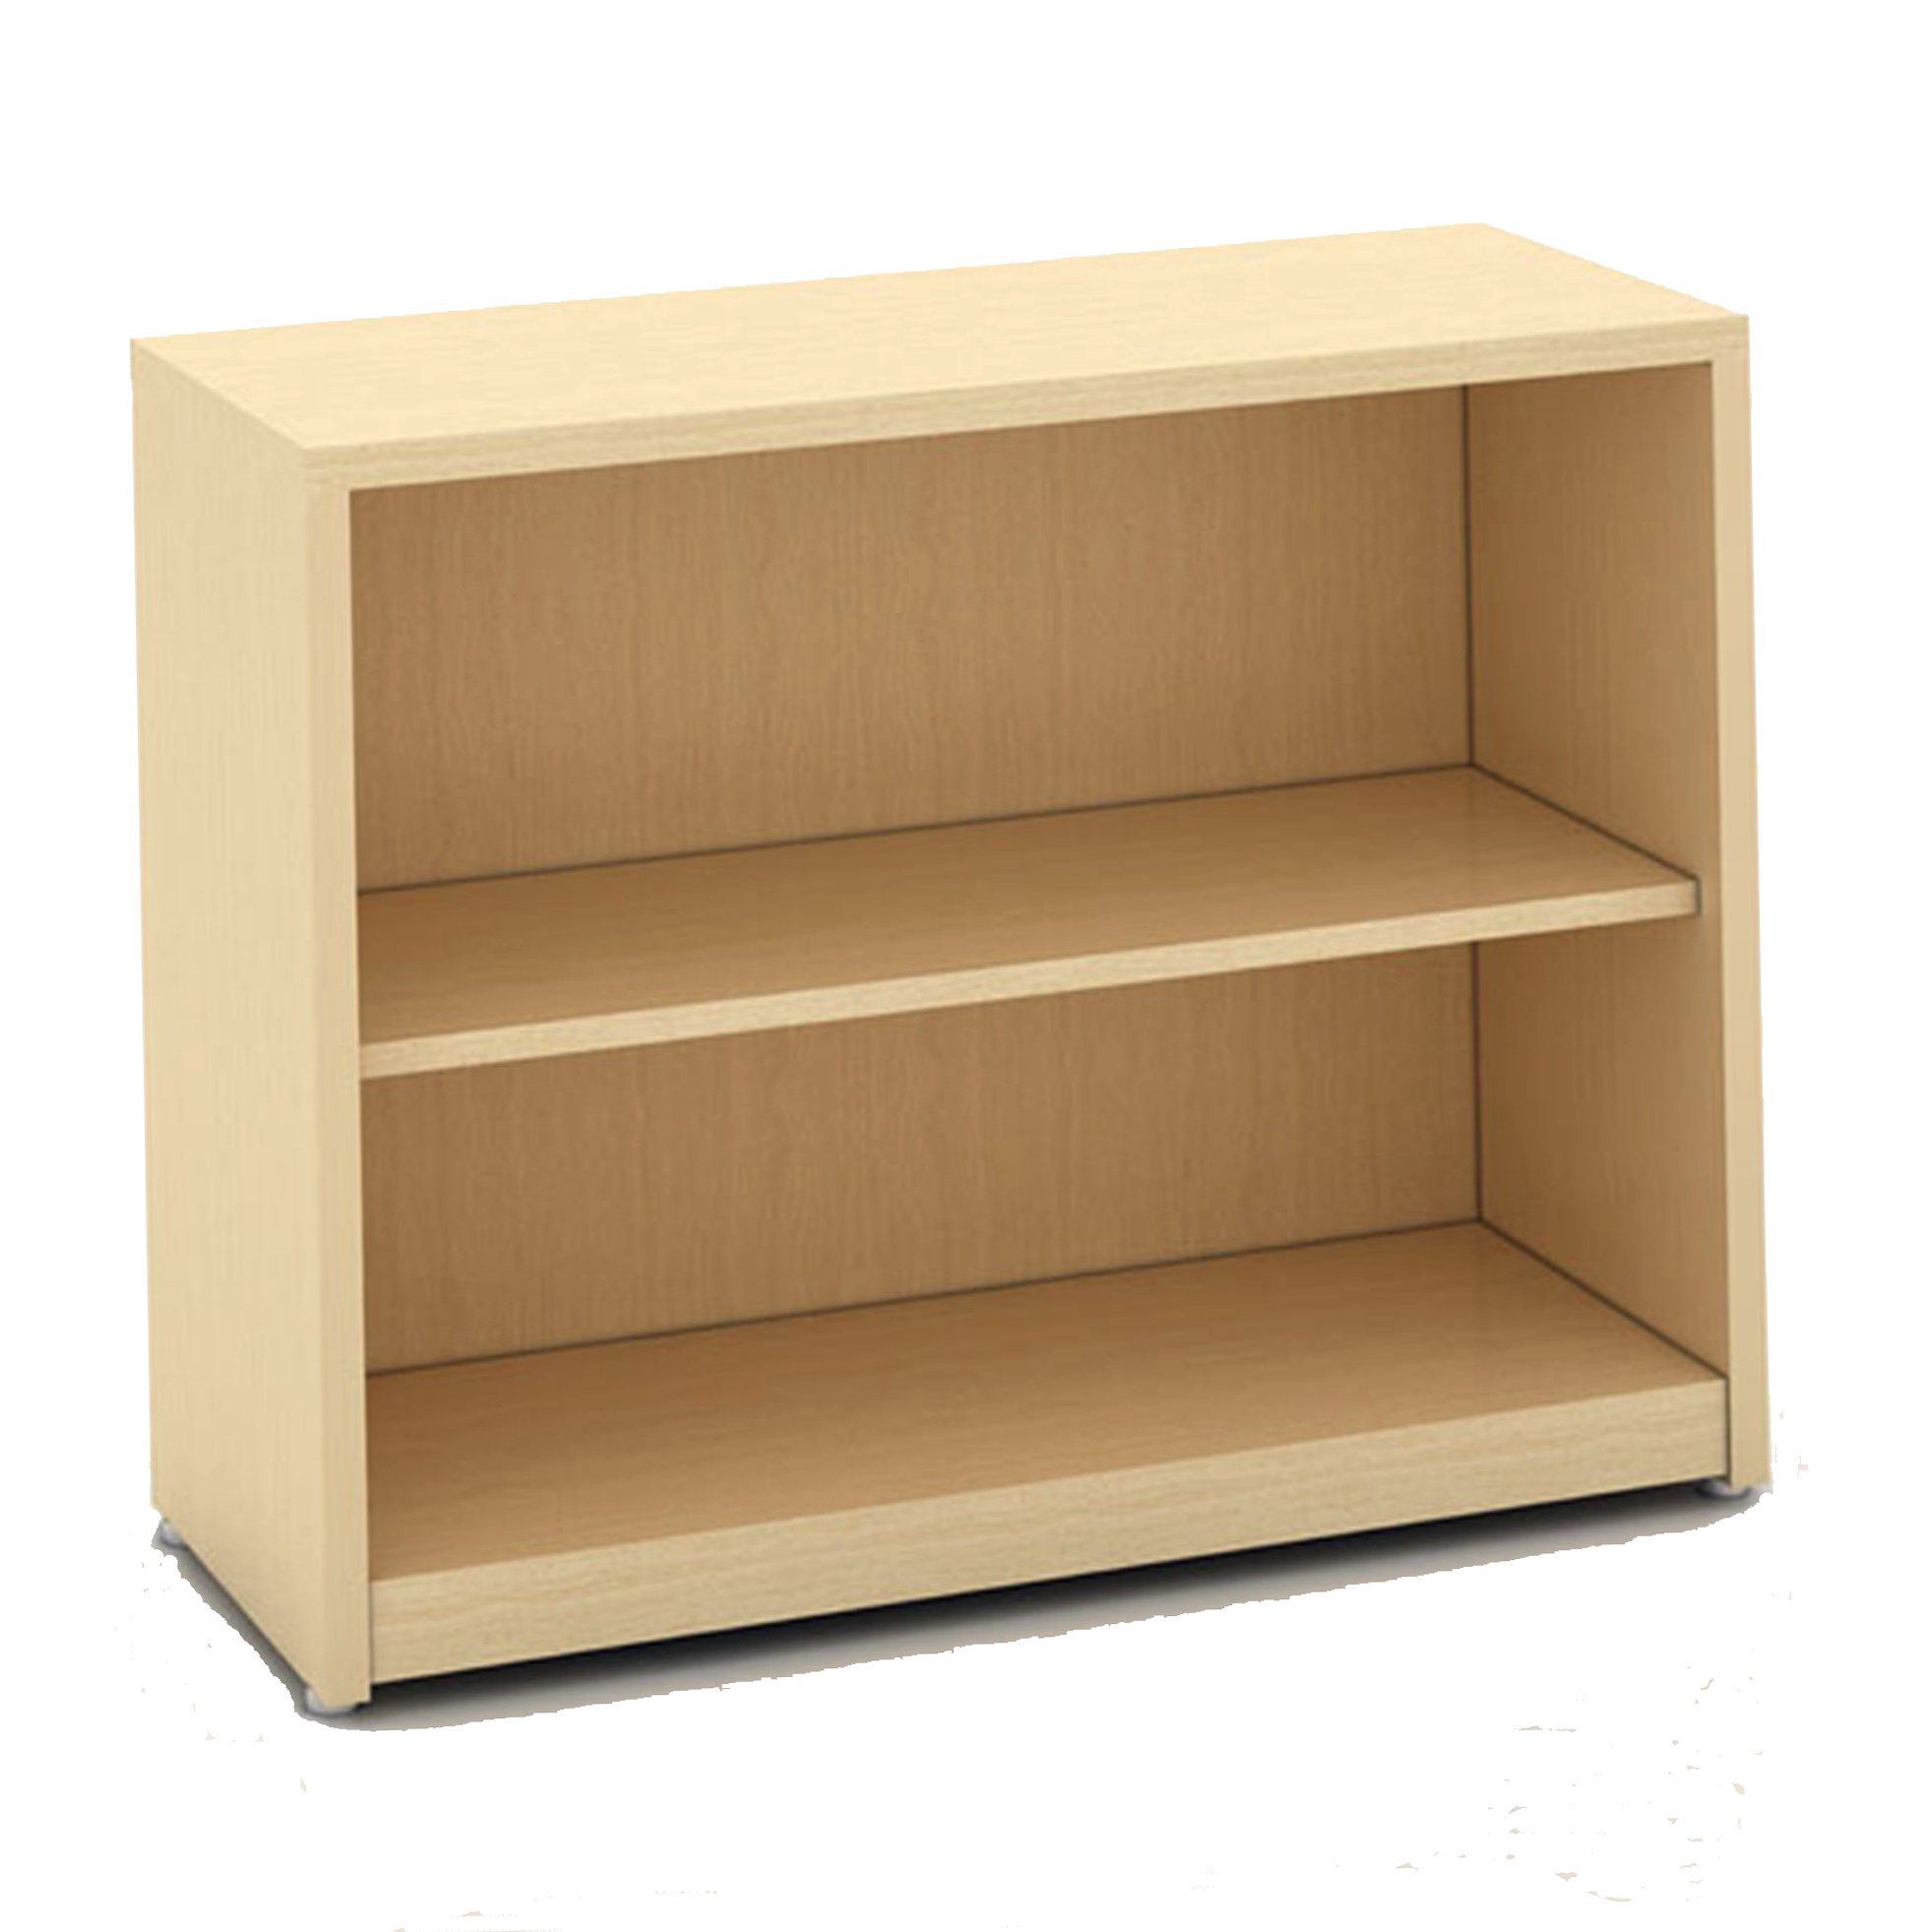 2 Shelf Bookcase Maple